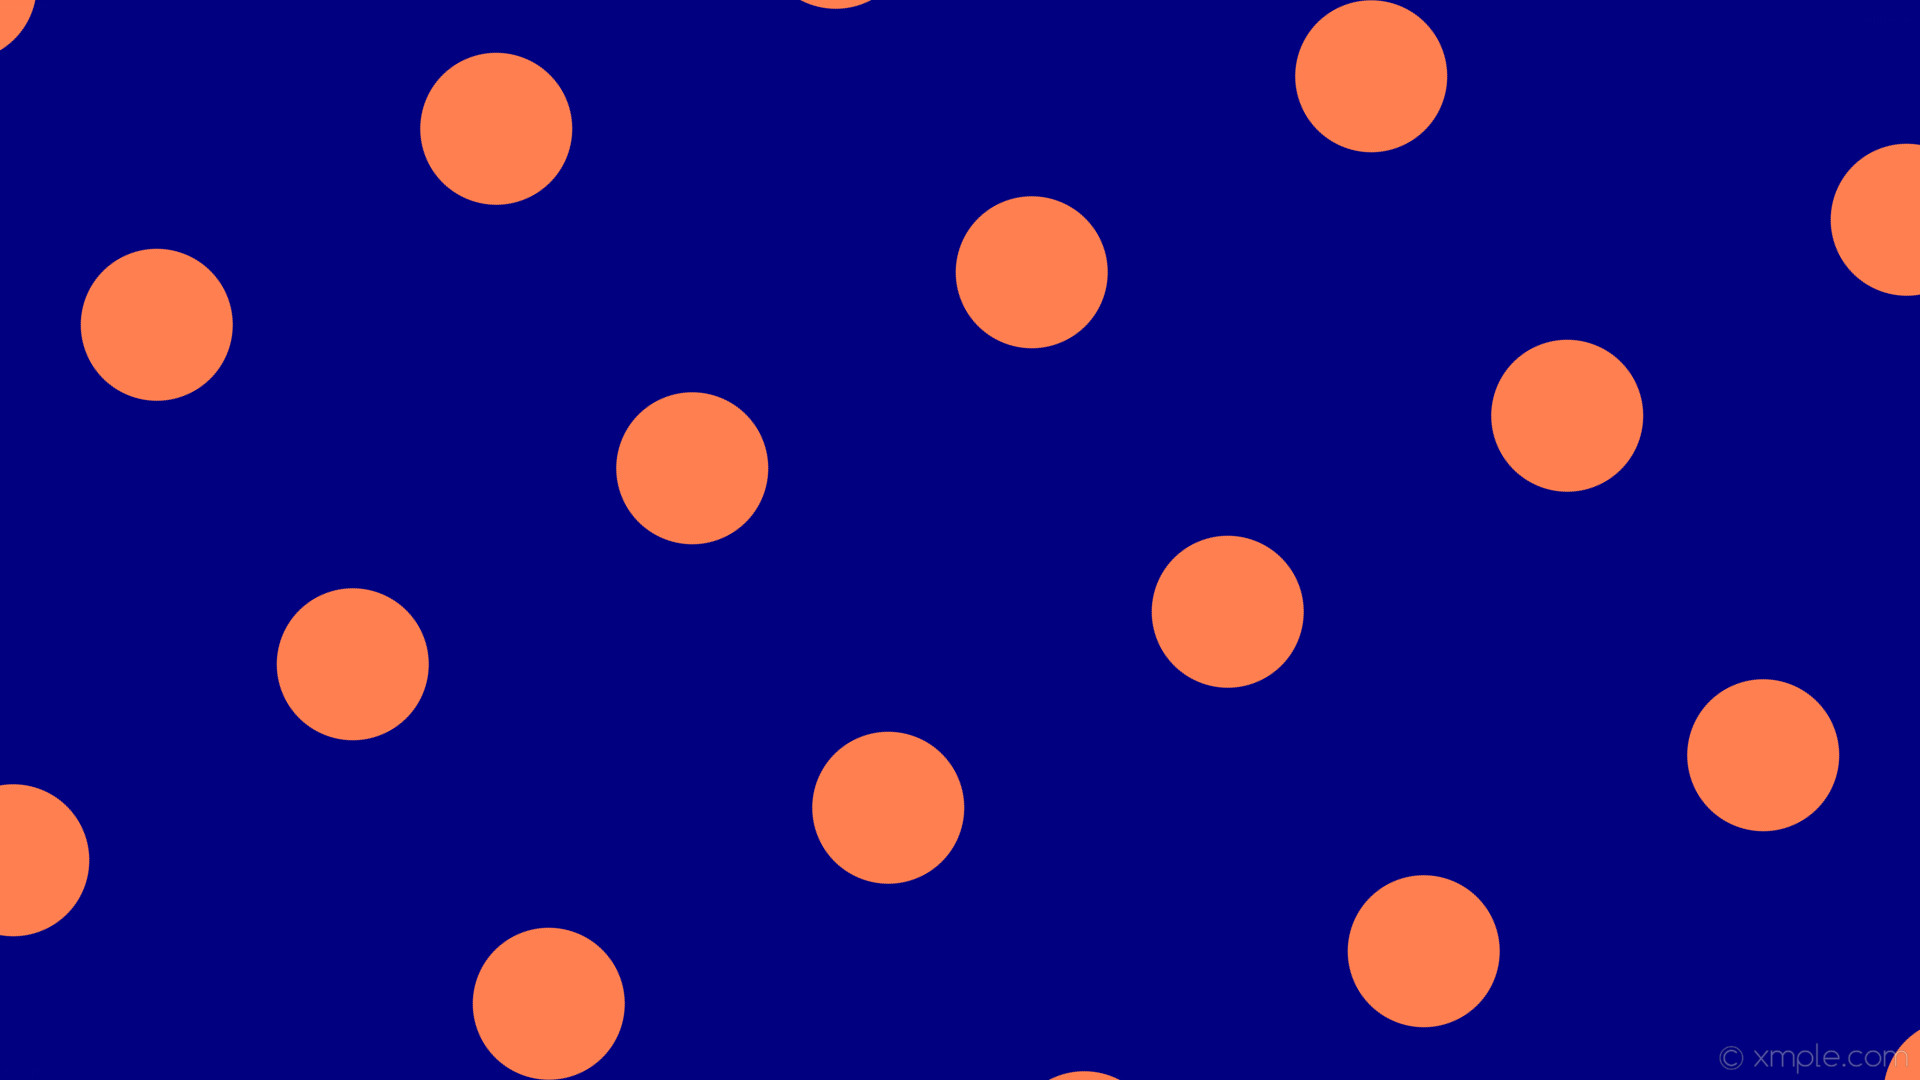 wallpaper orange spots blue polka dots navy coral #000080 #ff7f50 120°  152px 392px